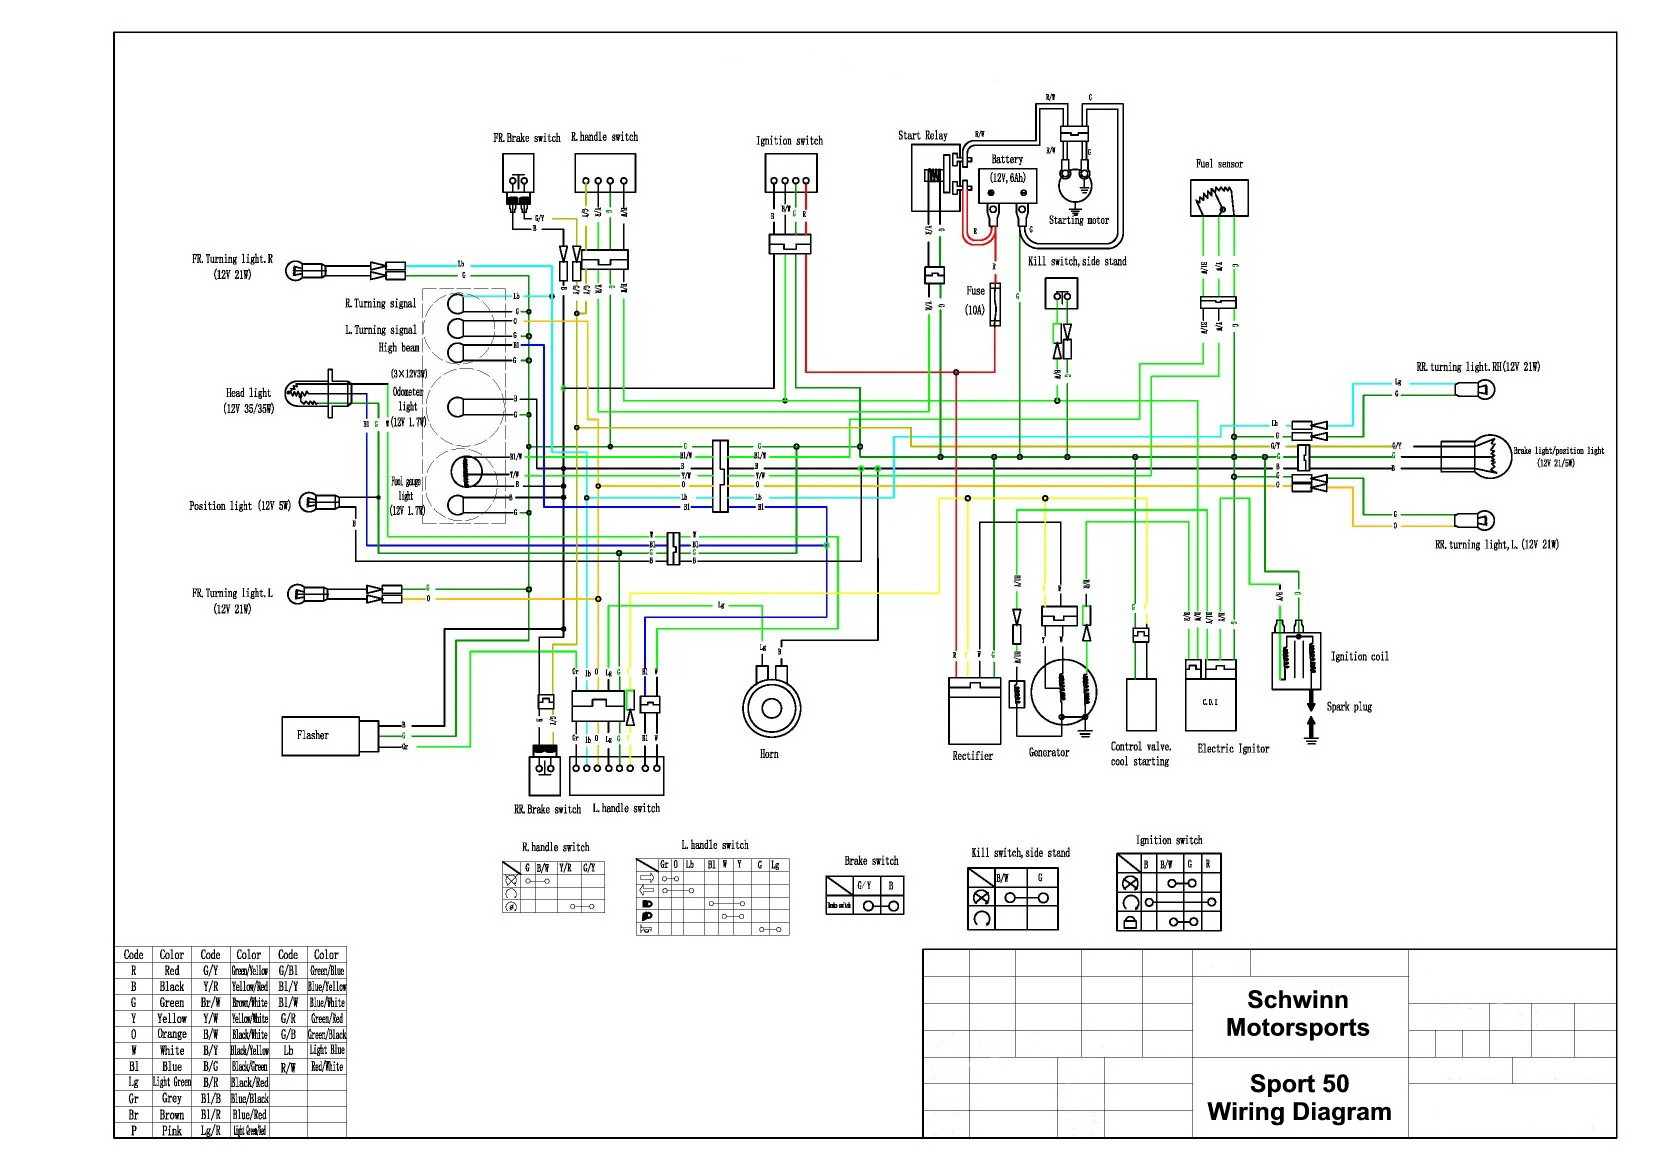 Mobility Scooter Wiring Diagram - Victory Trailer Wiring Diagram Best Pride Mobility Victory Scooter Wiring Diagram Wiring solutions 4p